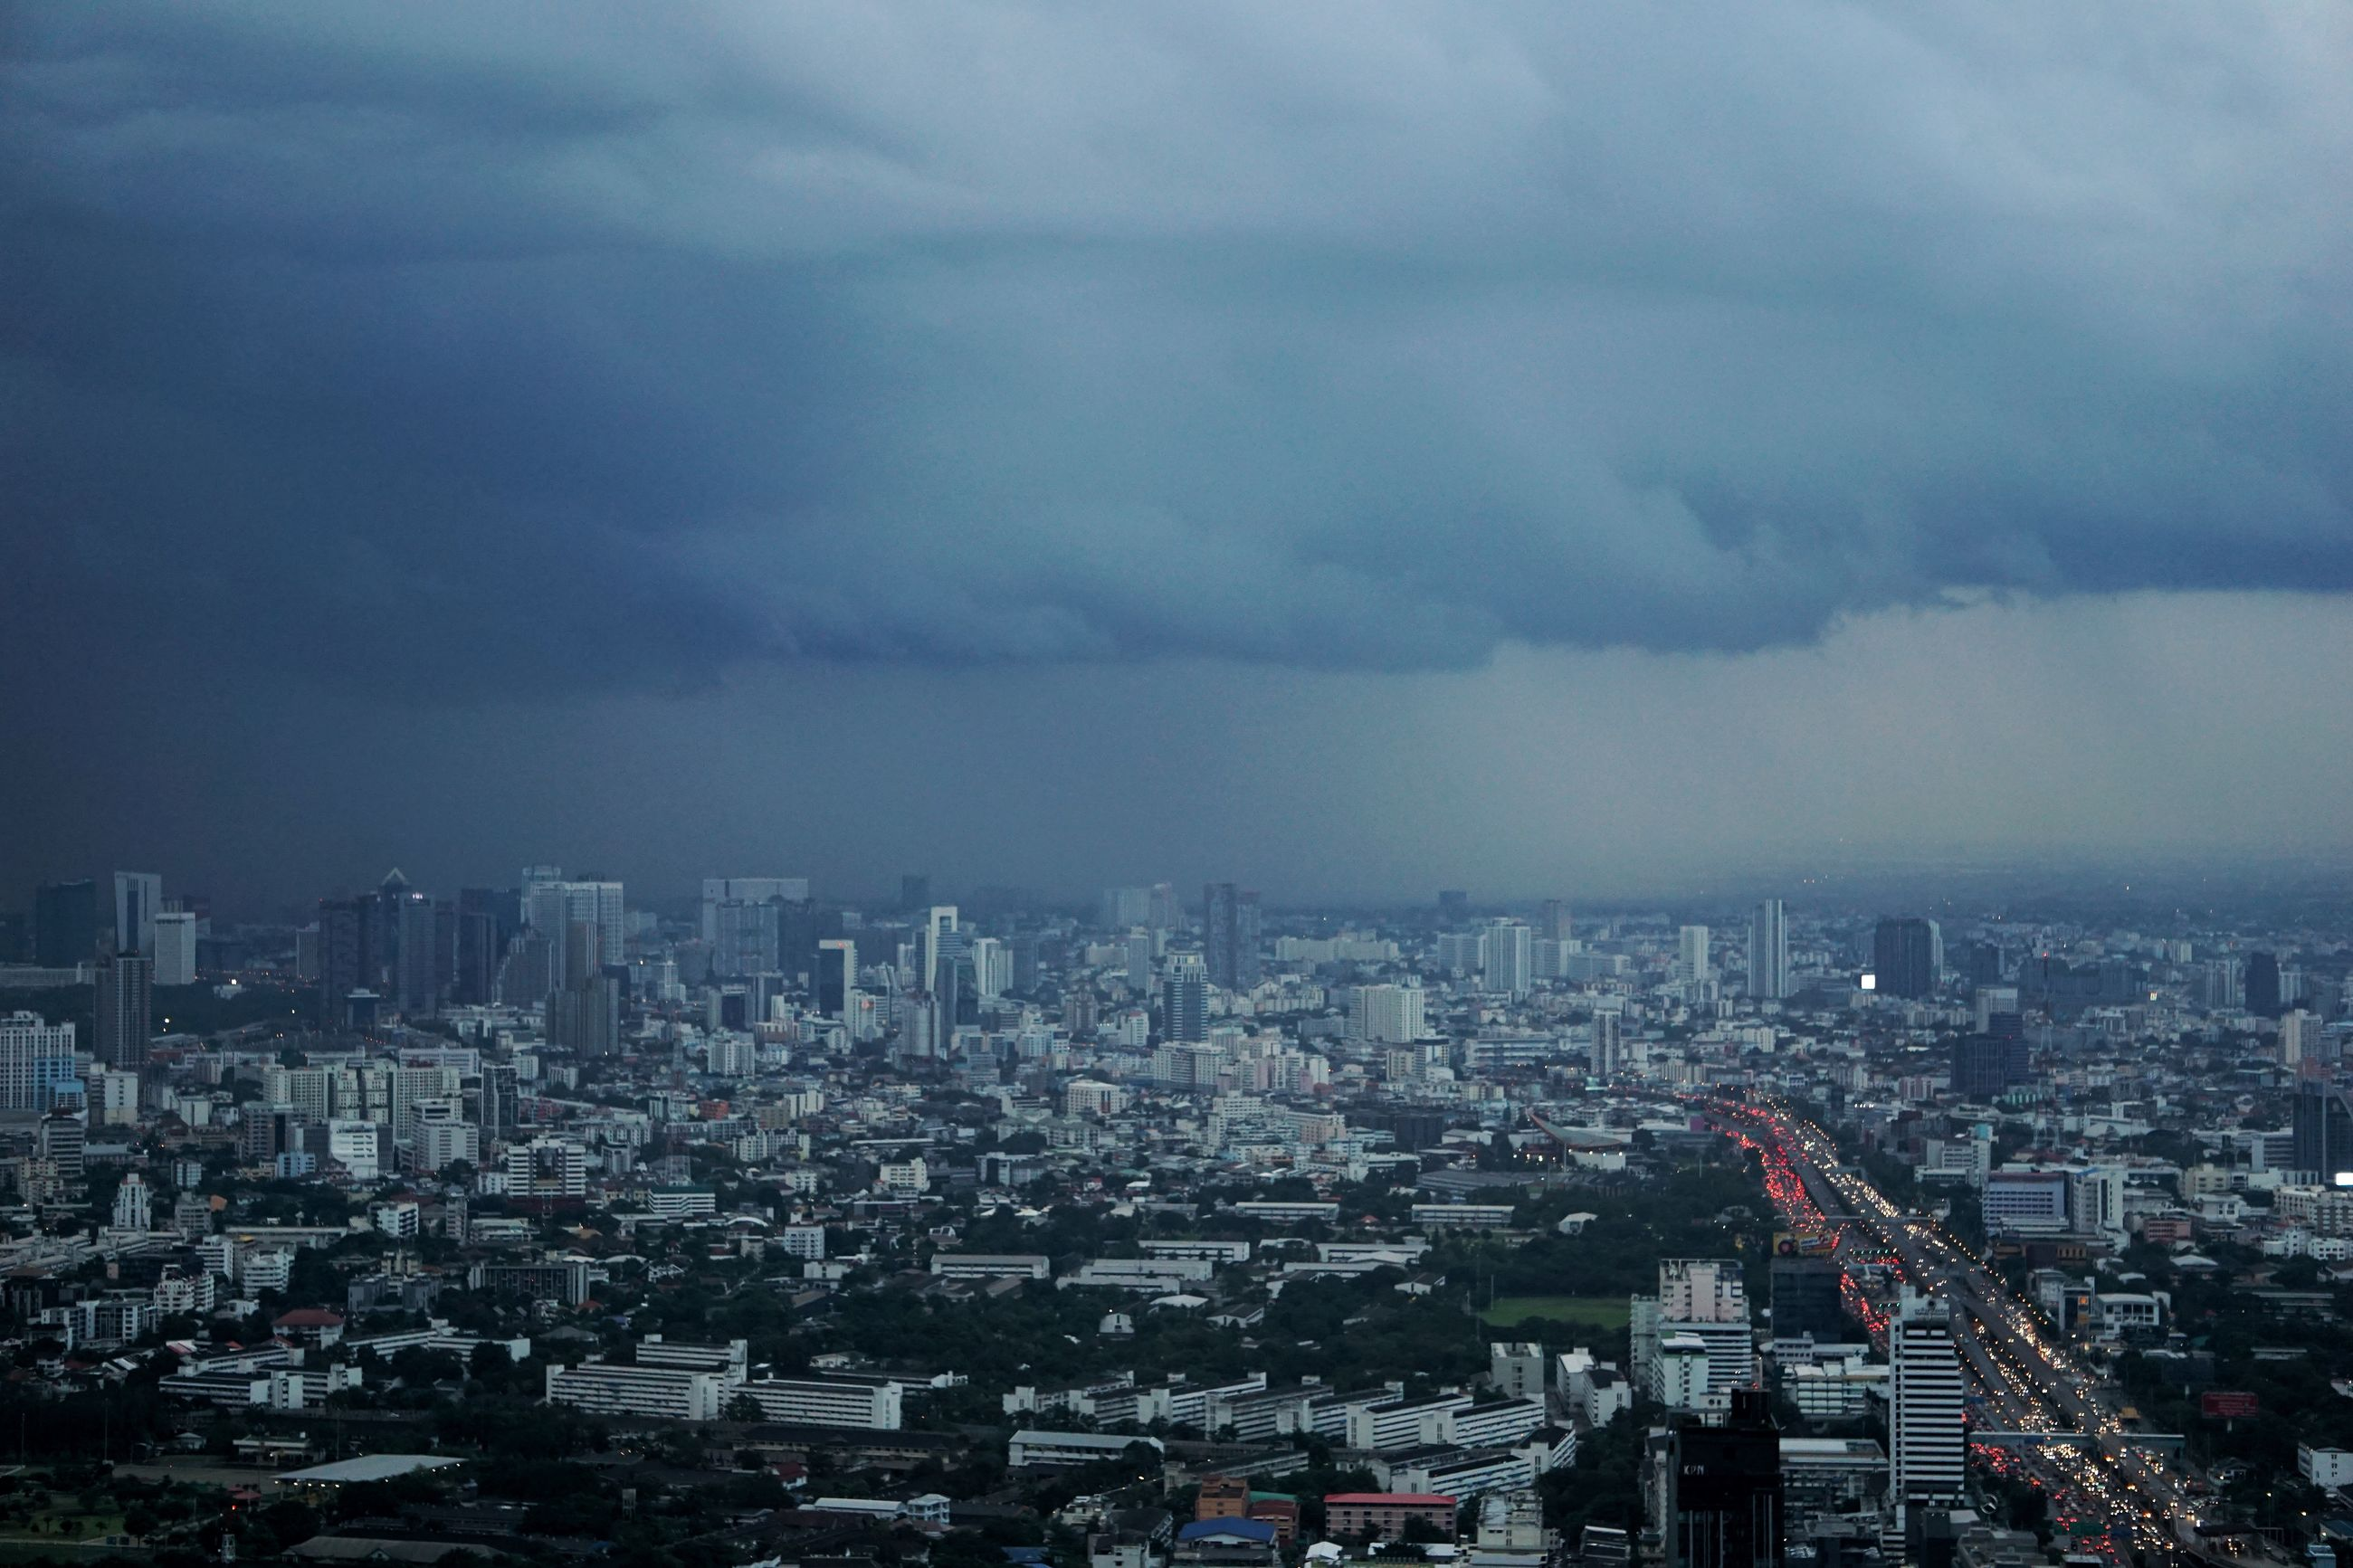 cloud - sky, cityscape, building exterior, city, sky, architecture, built structure, crowd, building, nature, crowded, residential district, overcast, outdoors, landscape, high angle view, skyscraper, community, office building exterior, ominous, settlement